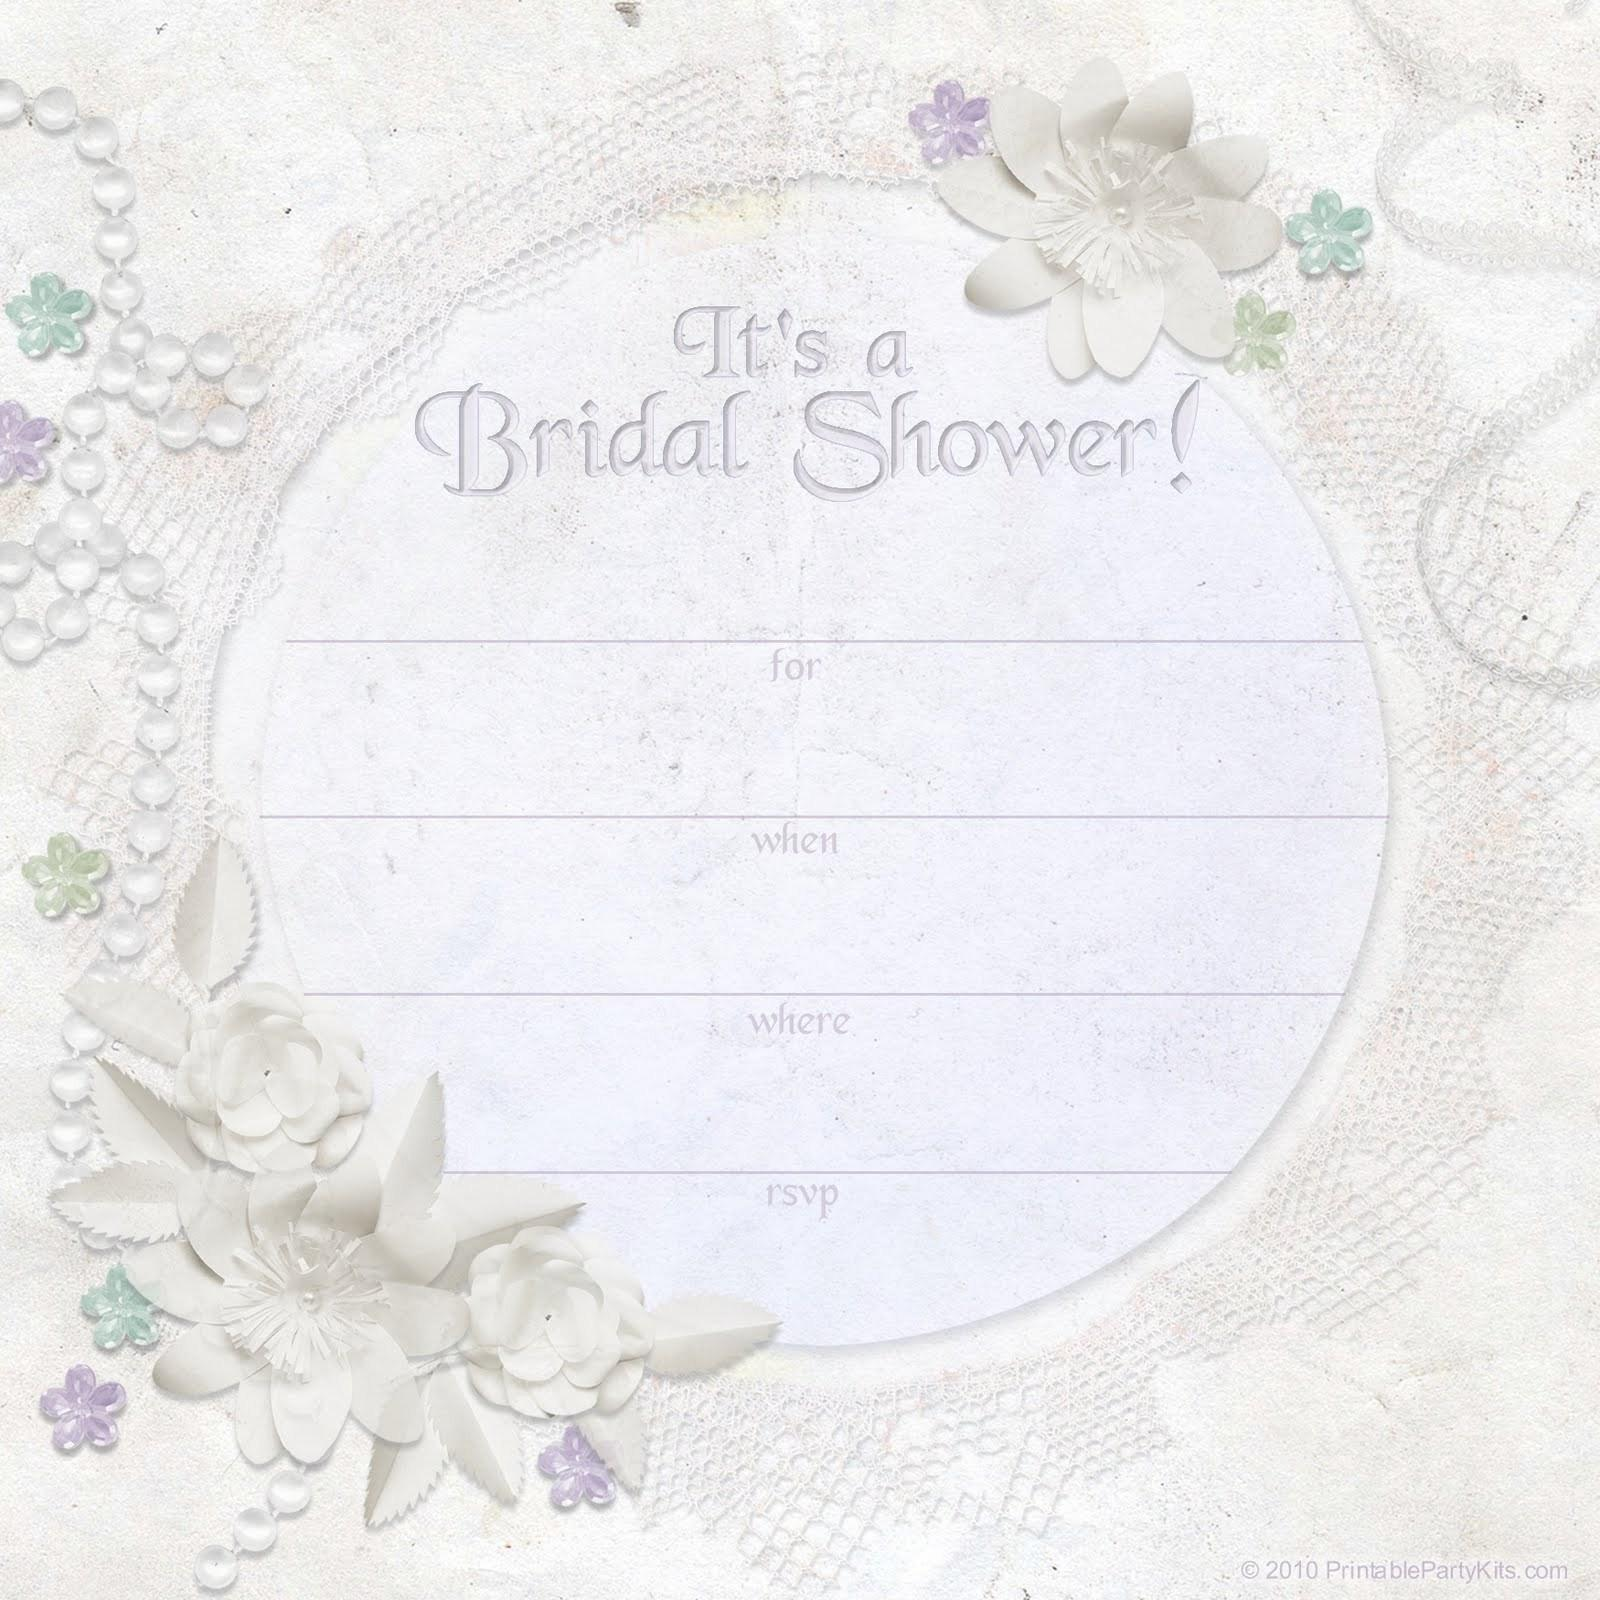 graphic about Free Printable Bridal Shower Invitations Templates referred to as Absolutely free Printable Bridal Shower Invites Templates